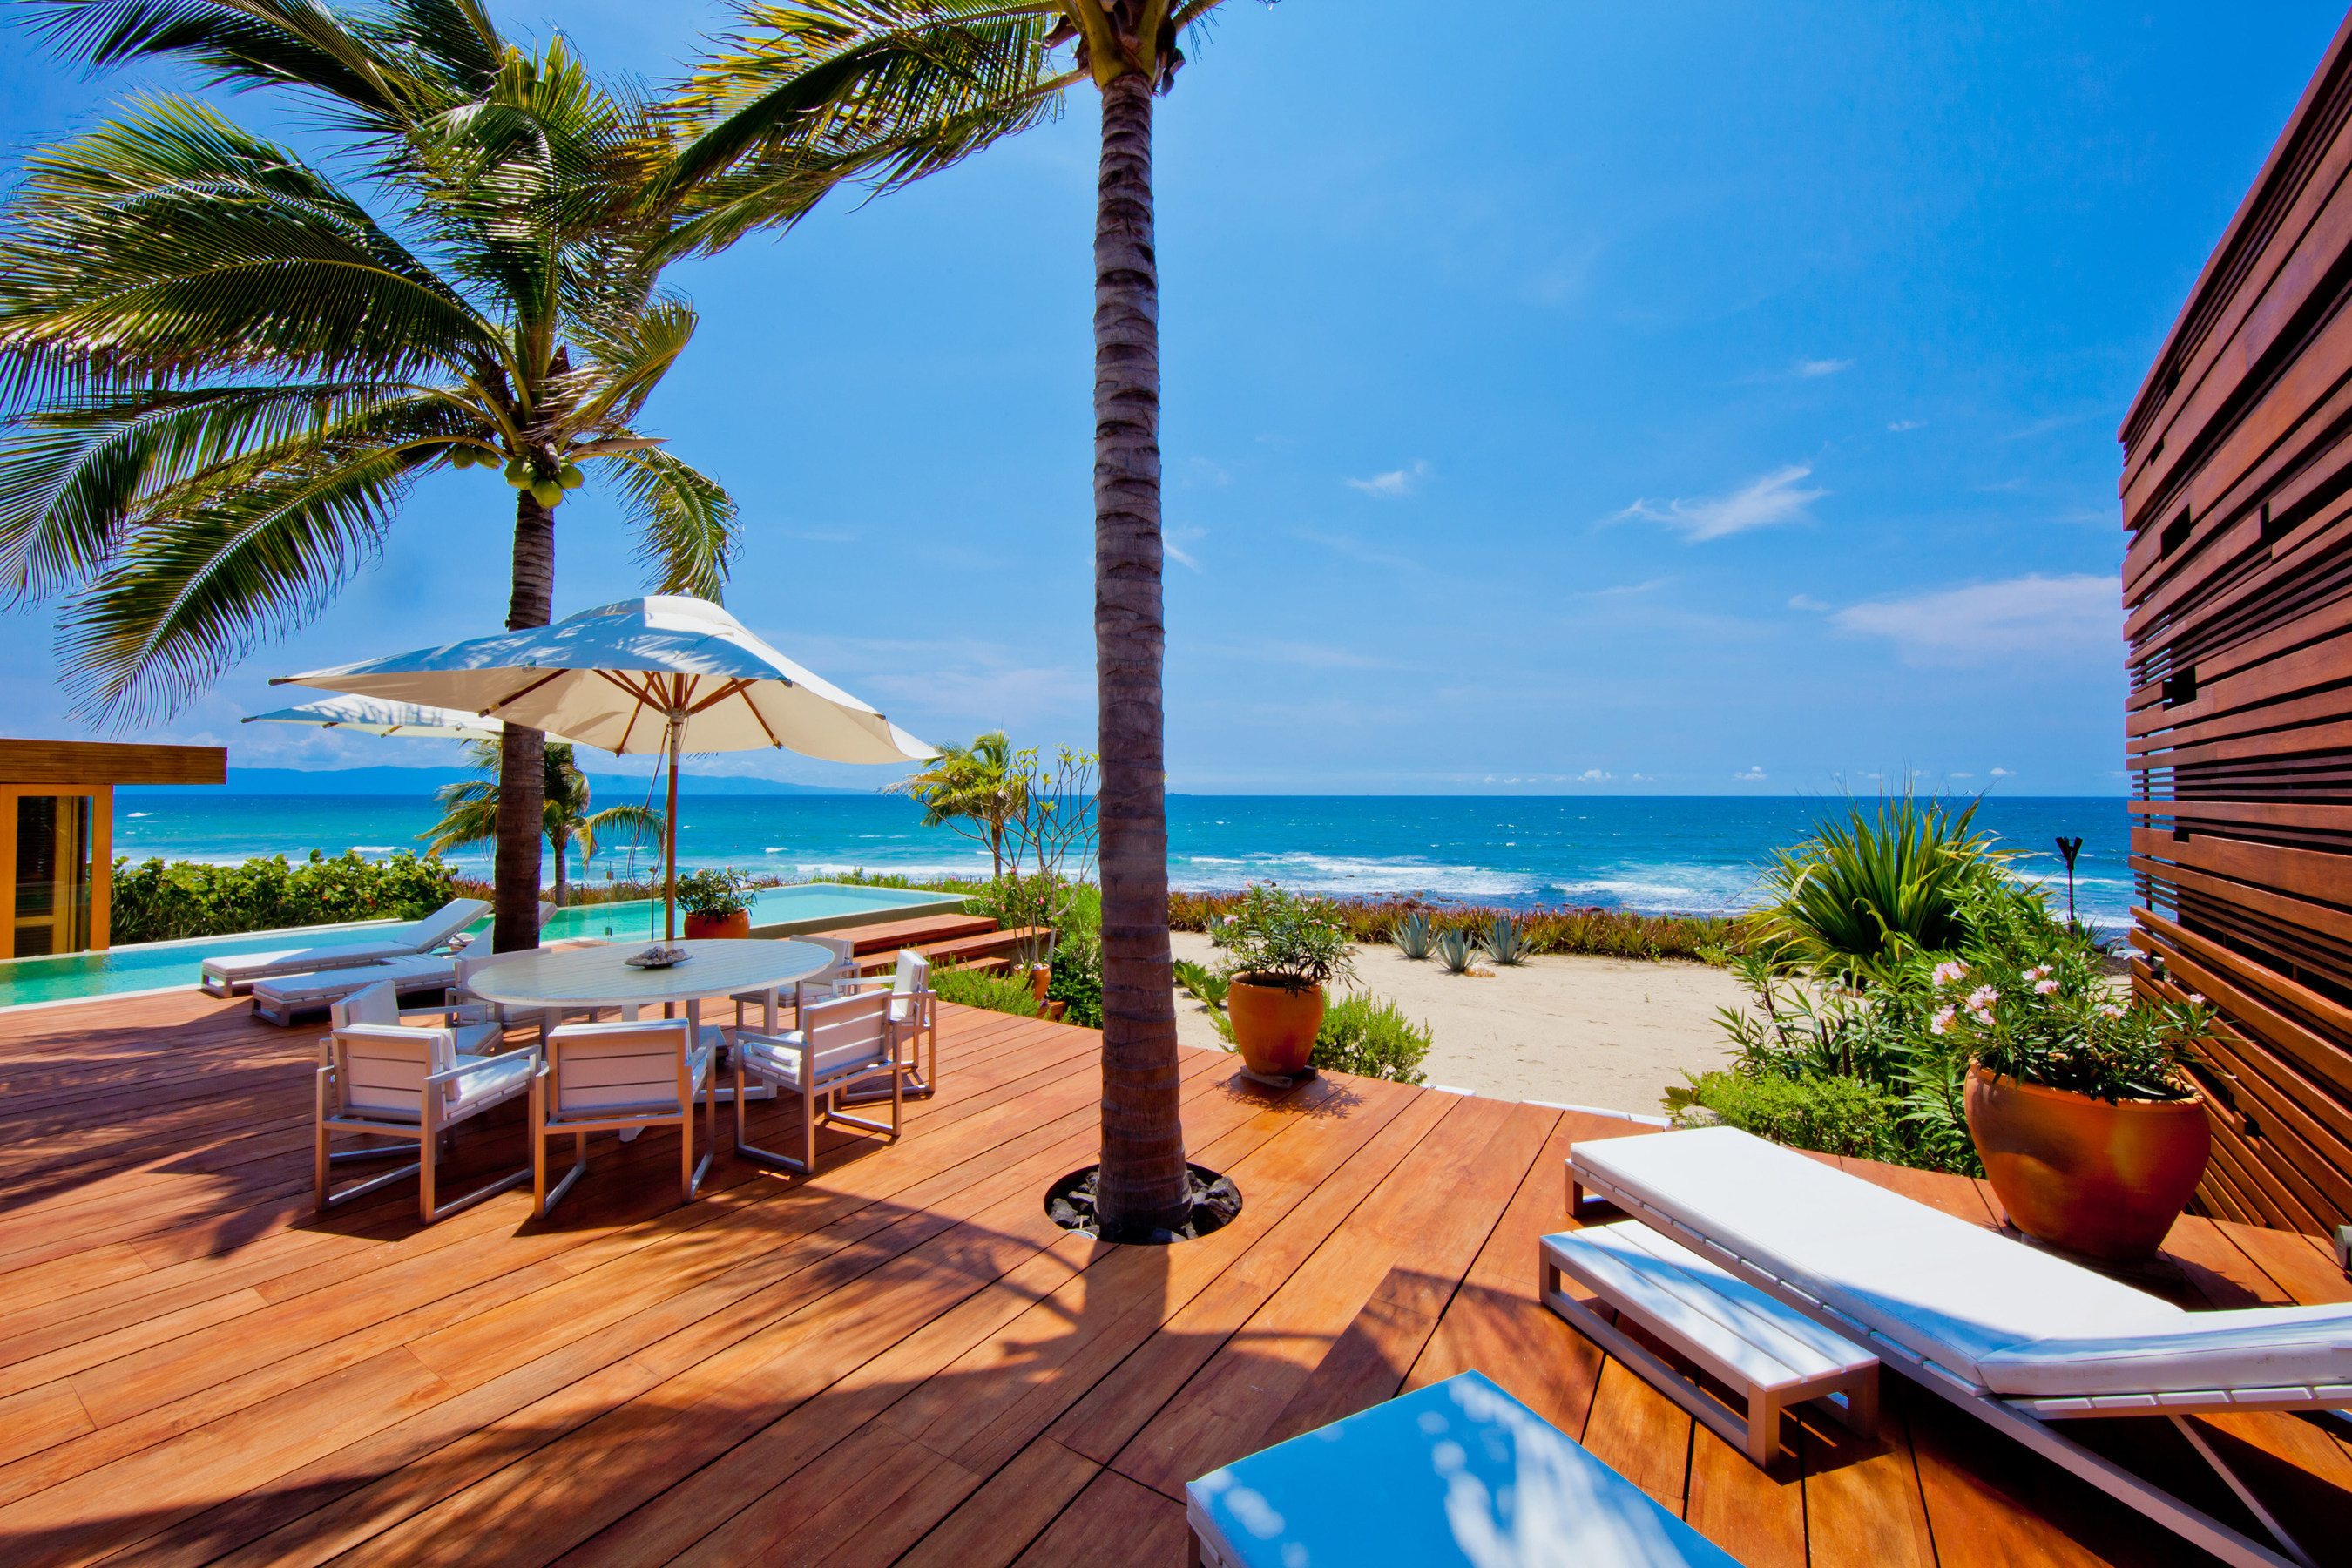 Concierge Auctions Expands Its International Footprint With Two Successful Auctions In Picturesque Punta Mita, Mexico